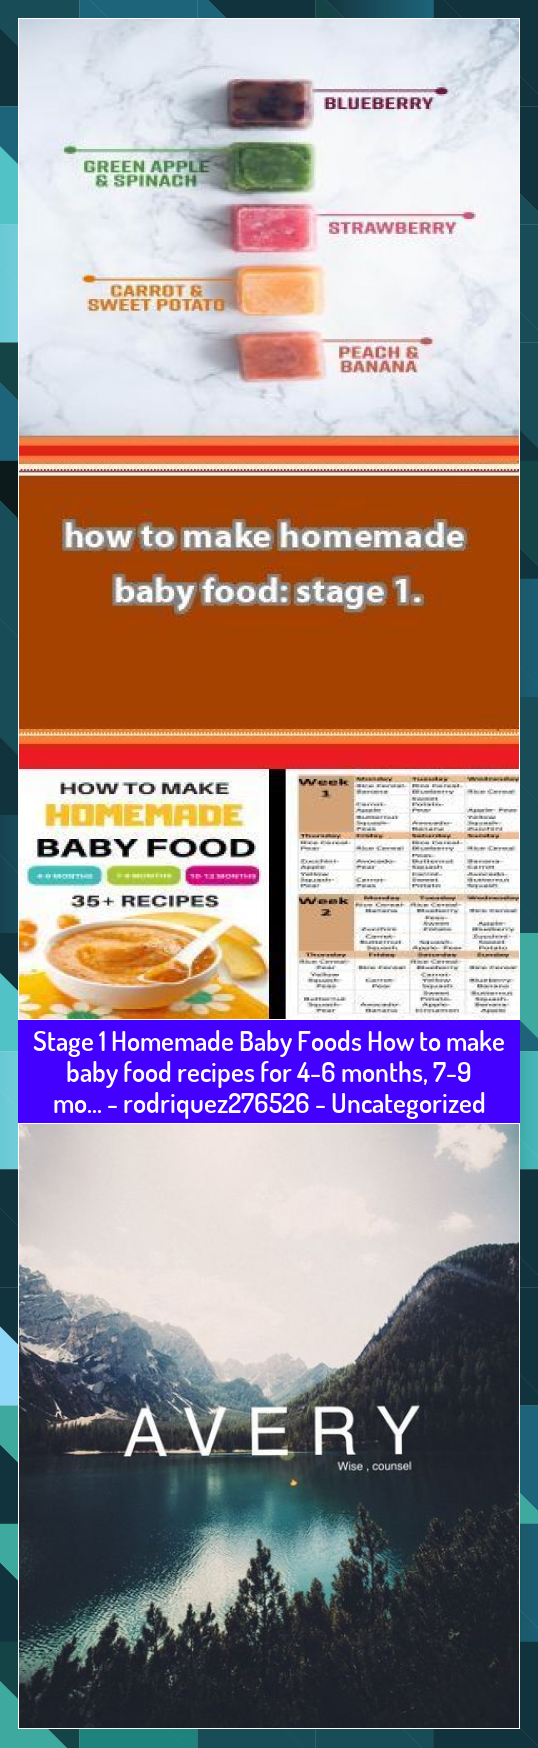 Stage 1 Homemade Baby Foods How to make baby food recipes for 4-6 months, 7-9 mo... #babyfoodrecipesstage1 Stage 1 Homemade Baby Foods How to make baby food recipes for 4-6 months, 7-9 mo... #homemadebabyfoods